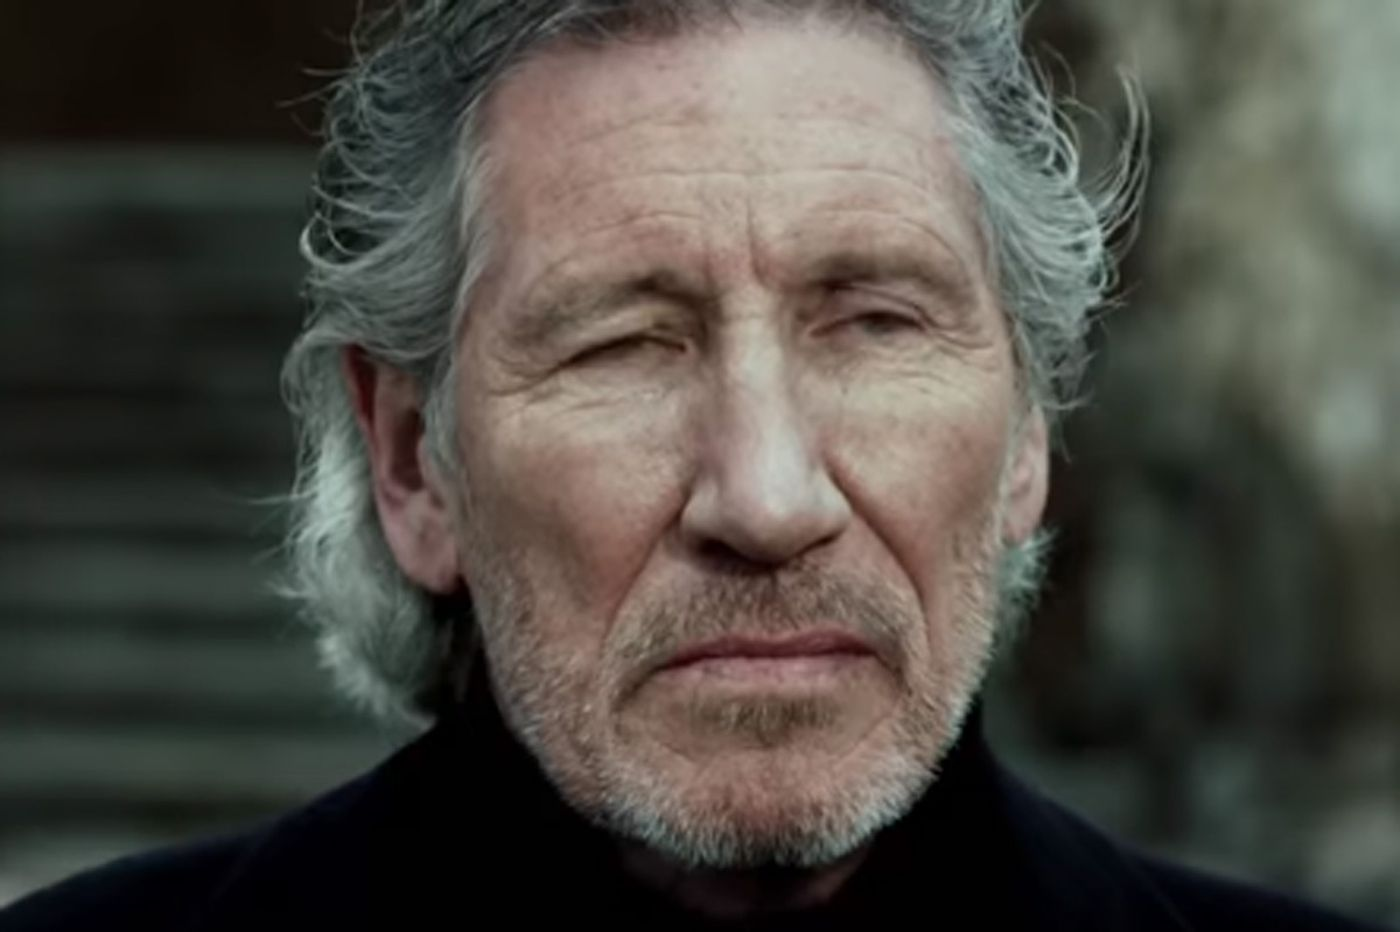 'Roger Waters The Wall': A concert documentary with lessons about war